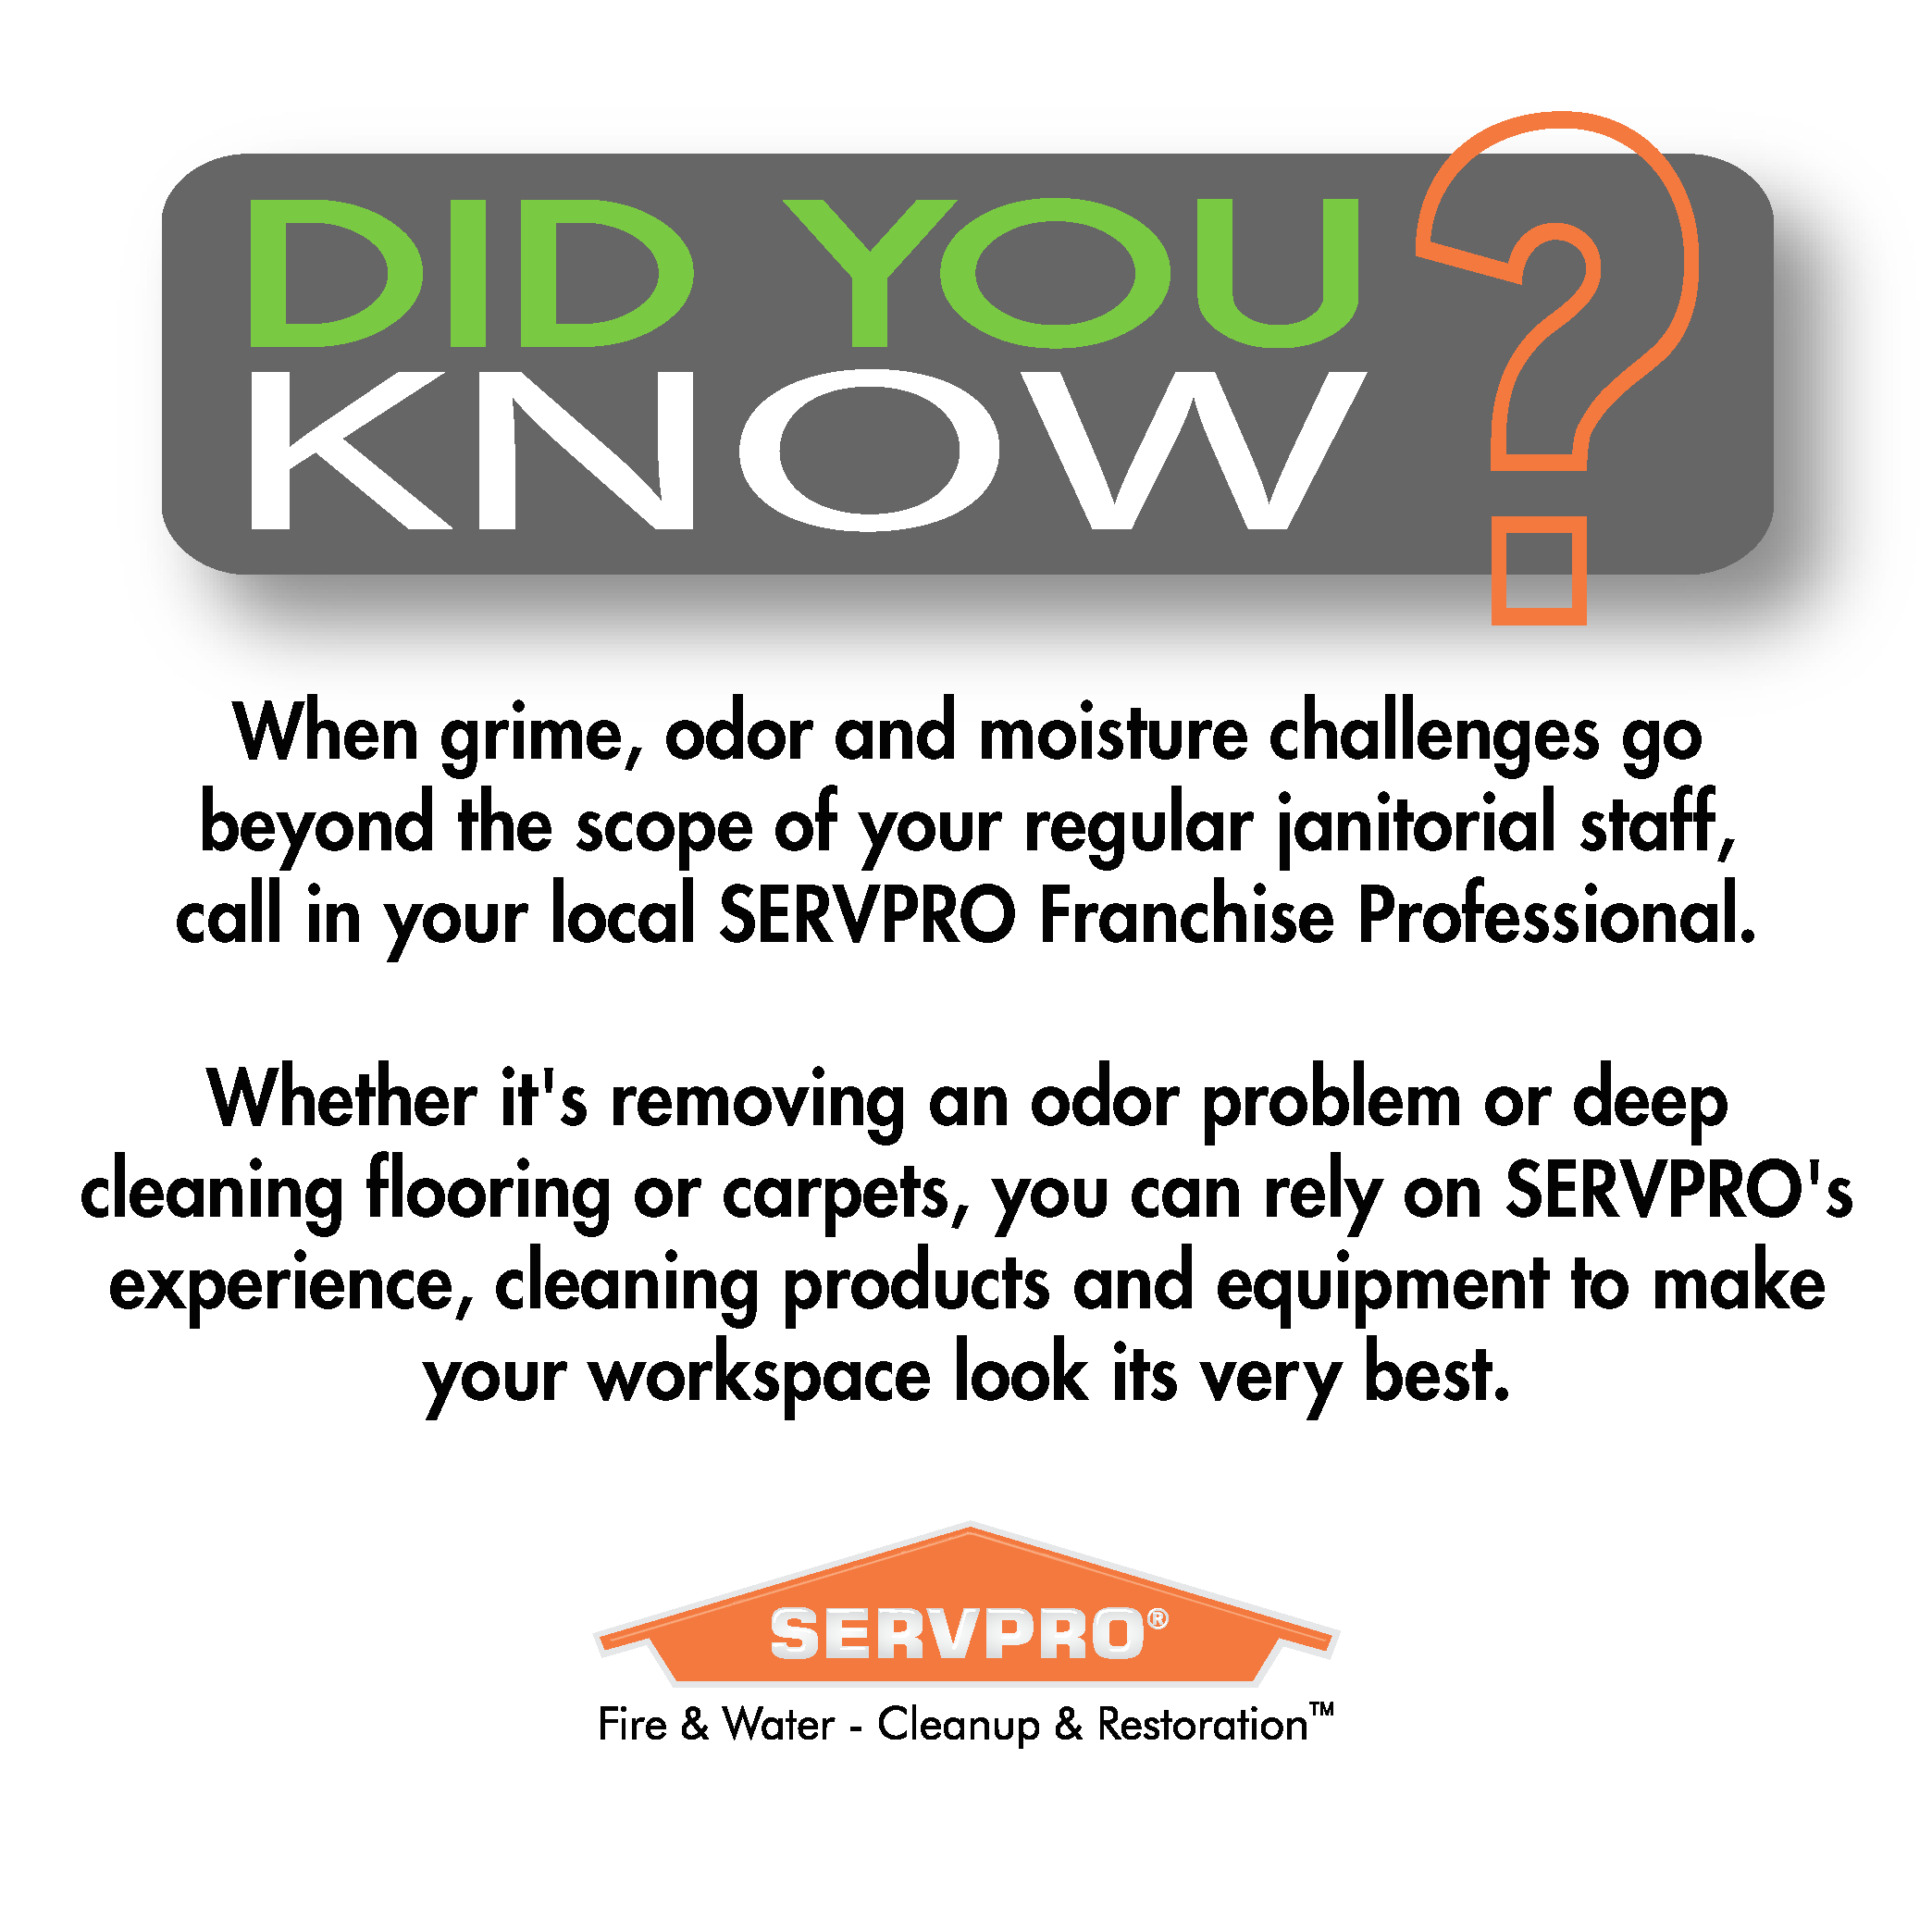 Pin by Servpro of Newtown & Southern Litchfield County on